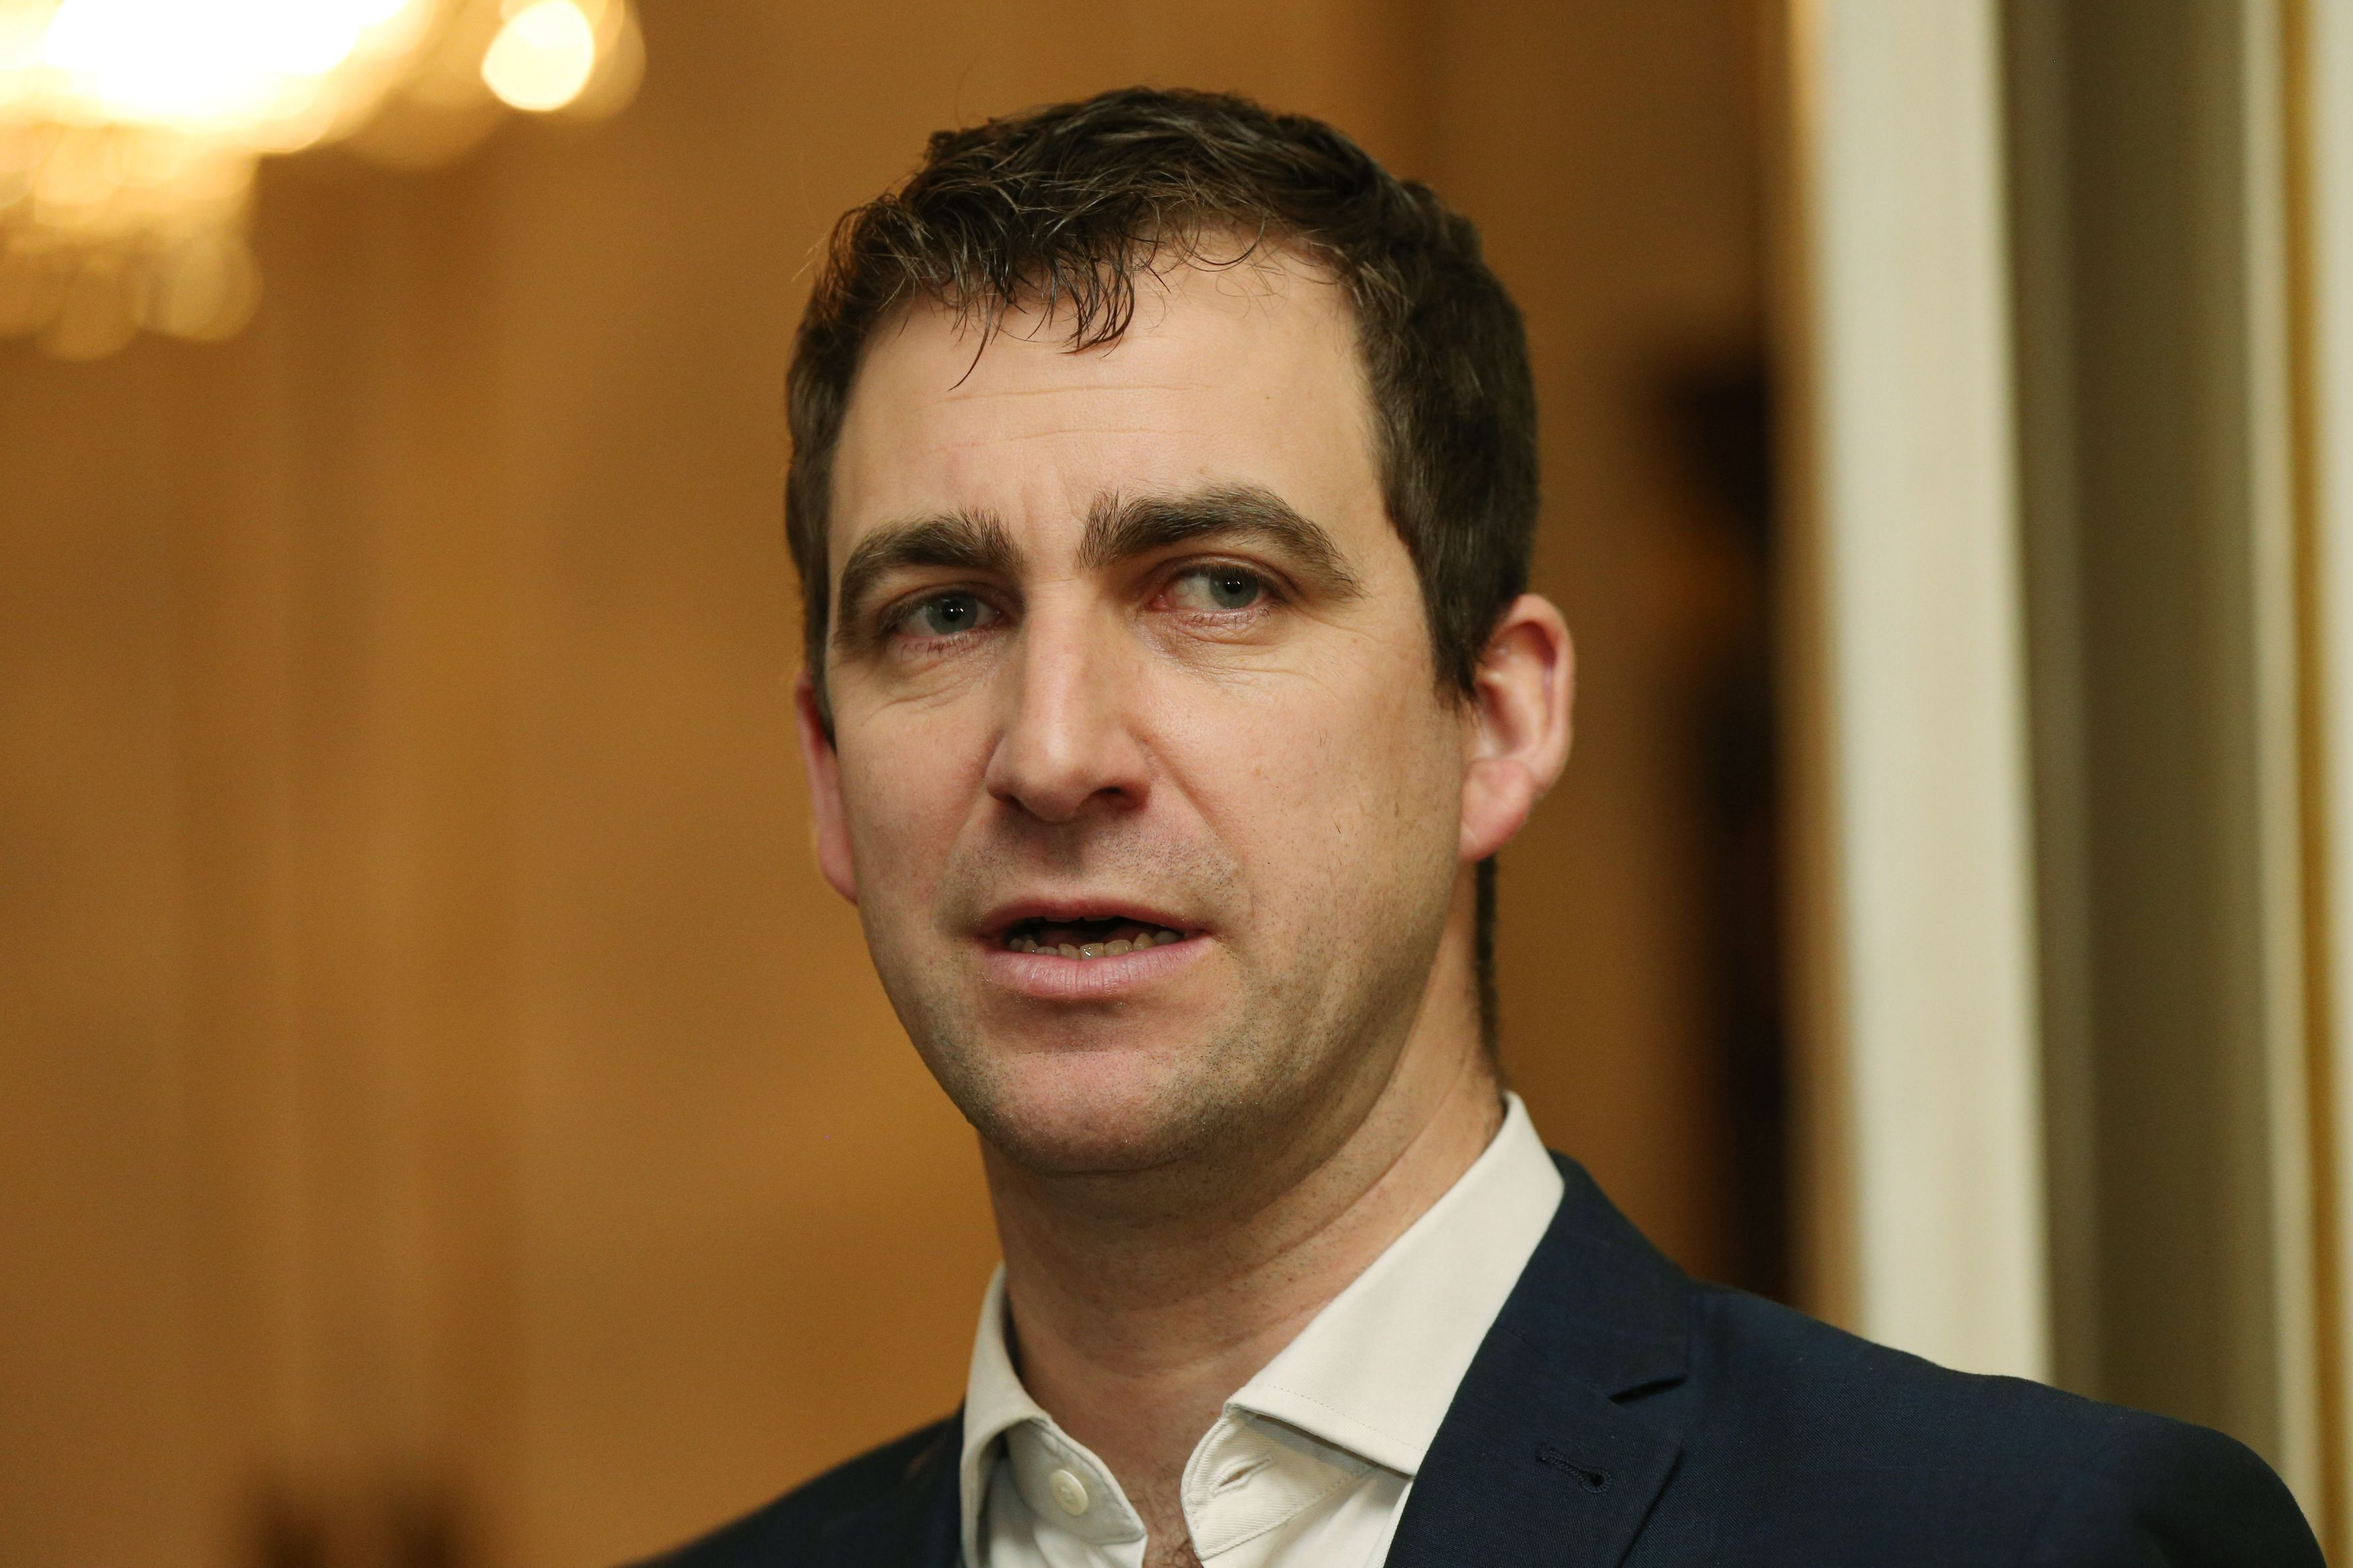 Brendan Cox Sends A Powerful Message About Unity In The Wake Of The Manchester